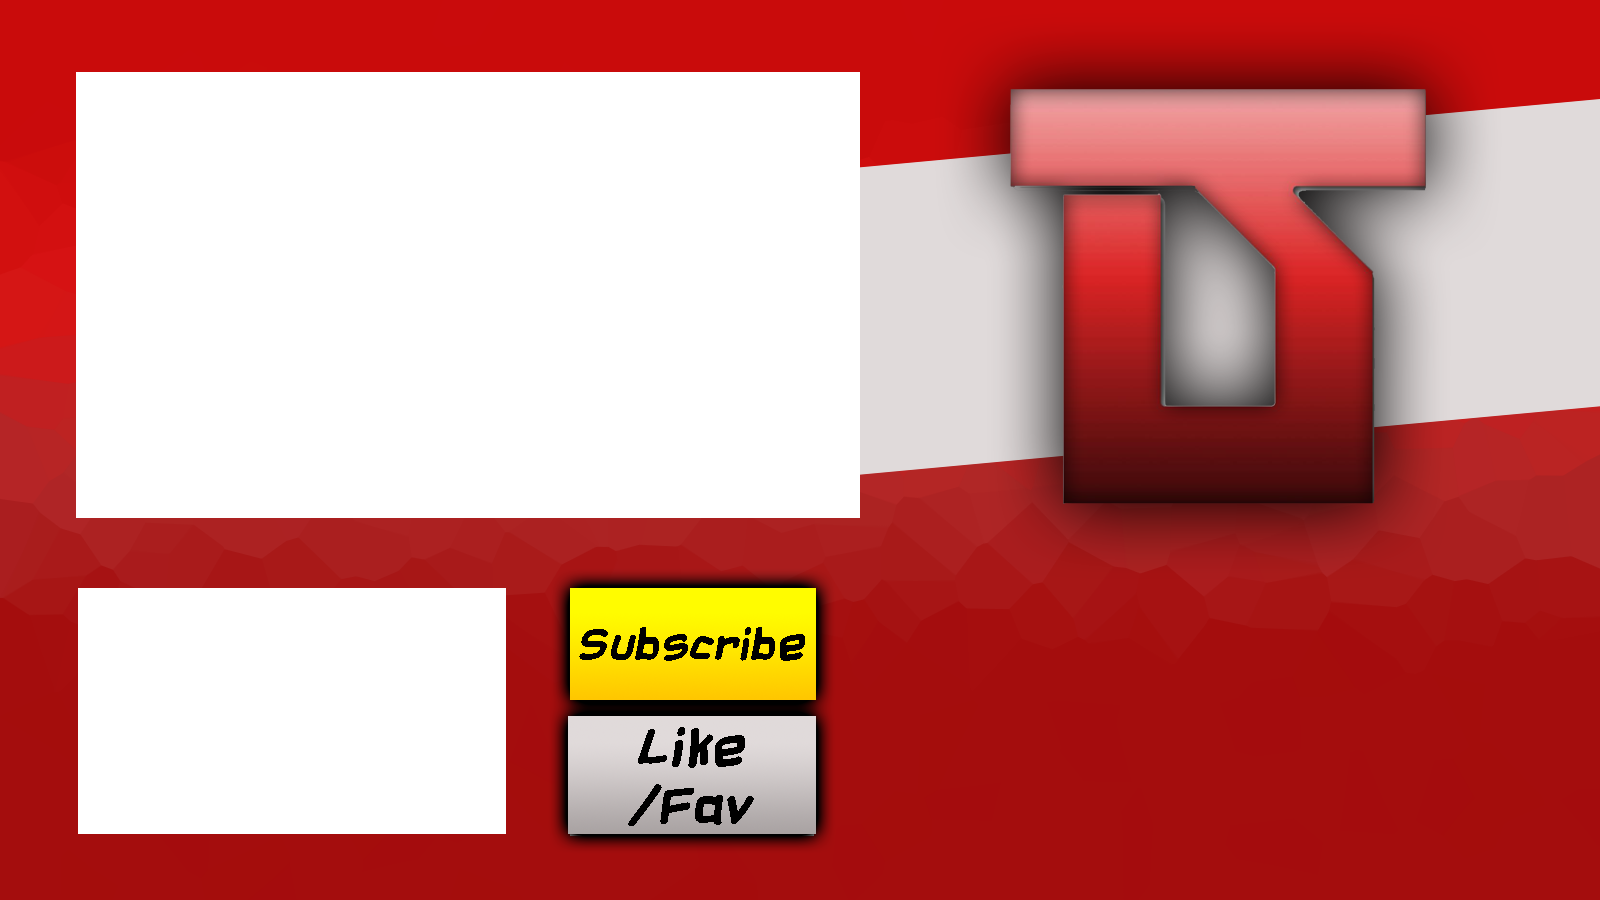 My New Youtube Outro Banner By Dalekstugaming On Deviantart